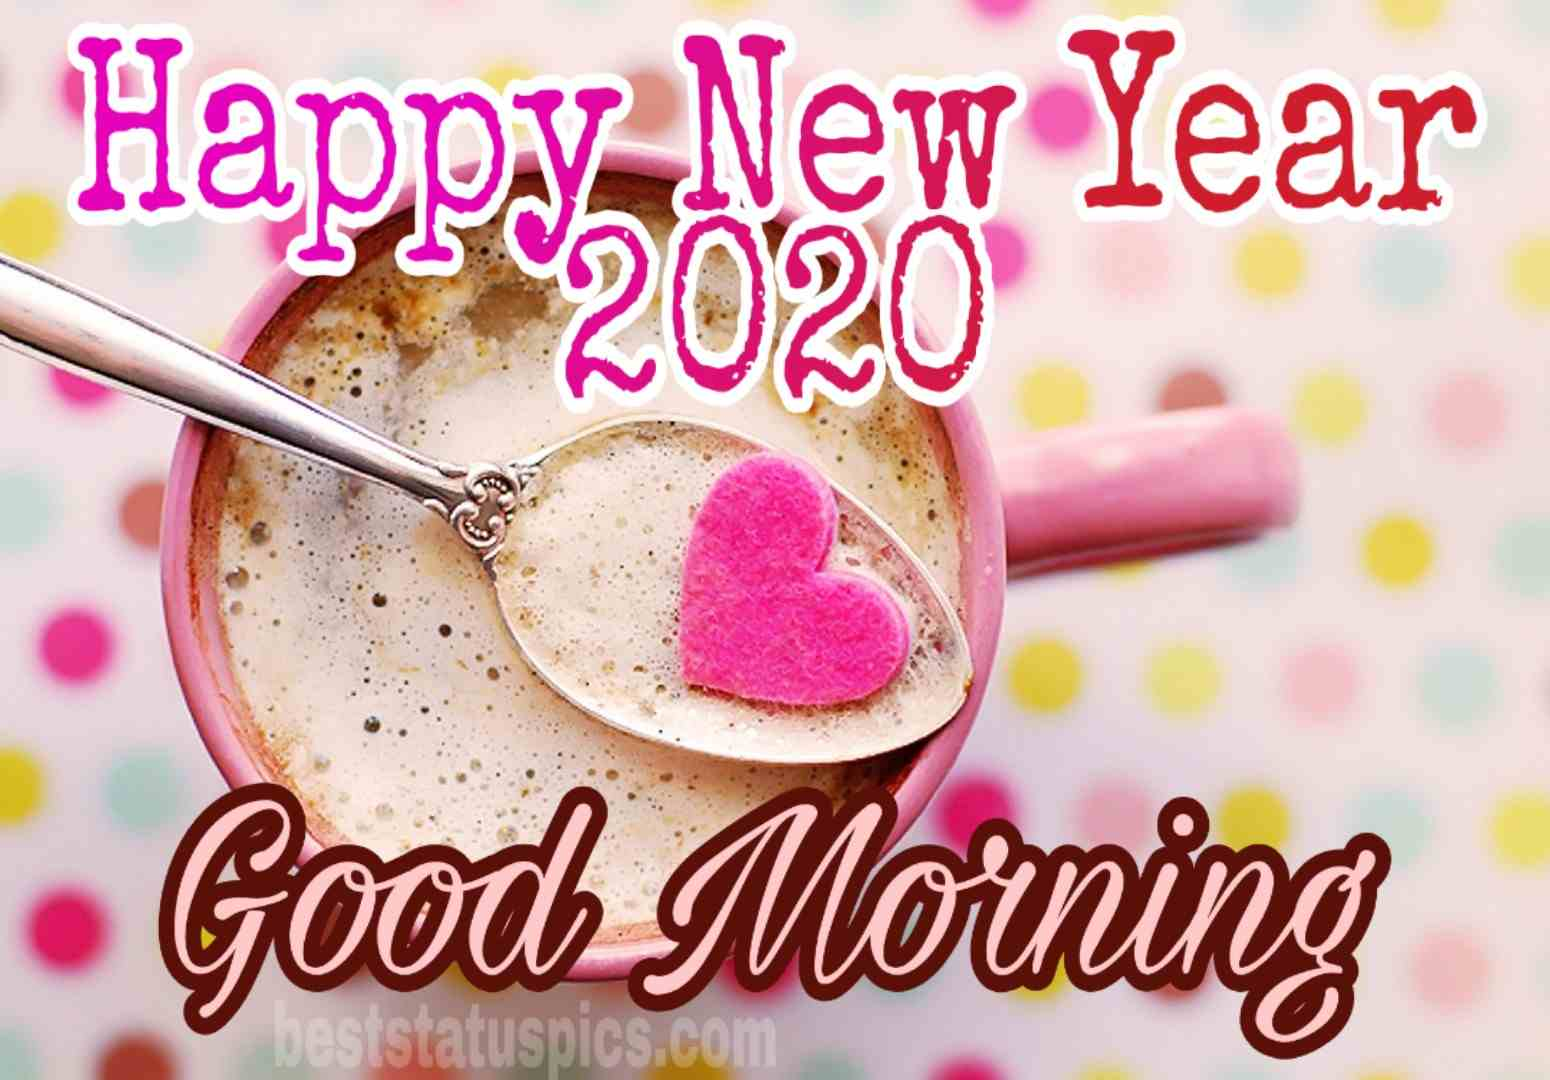 Good morning happy new year 2020 for lover